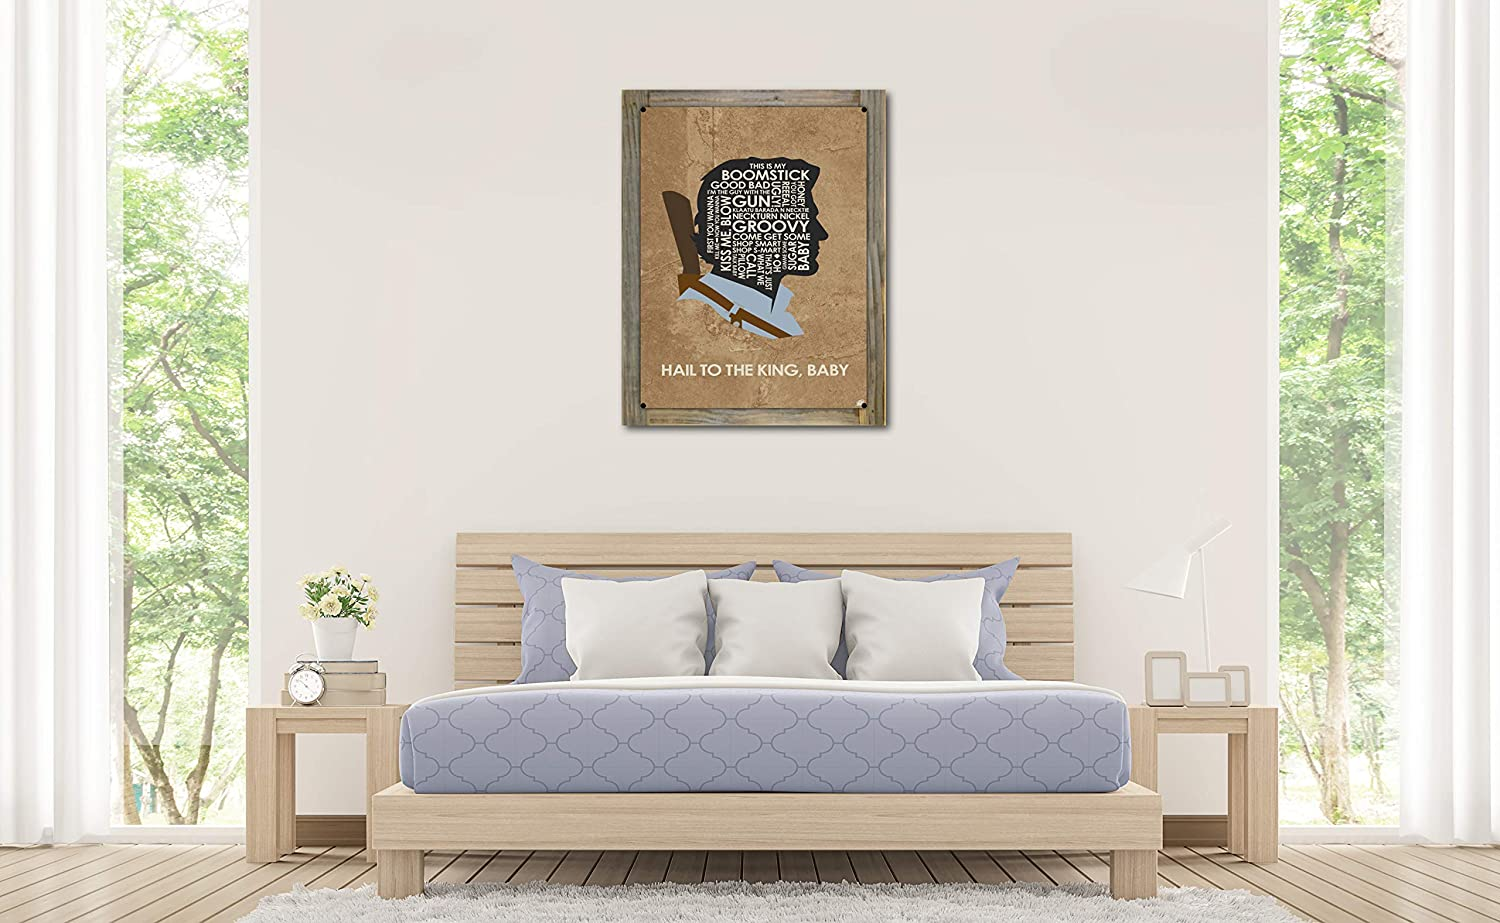 Amazon.com: Northwest Art Mall Ash - Hail to The King, Baby Metal Print on Reclaimed Barn Wood by Stephen Poon (18